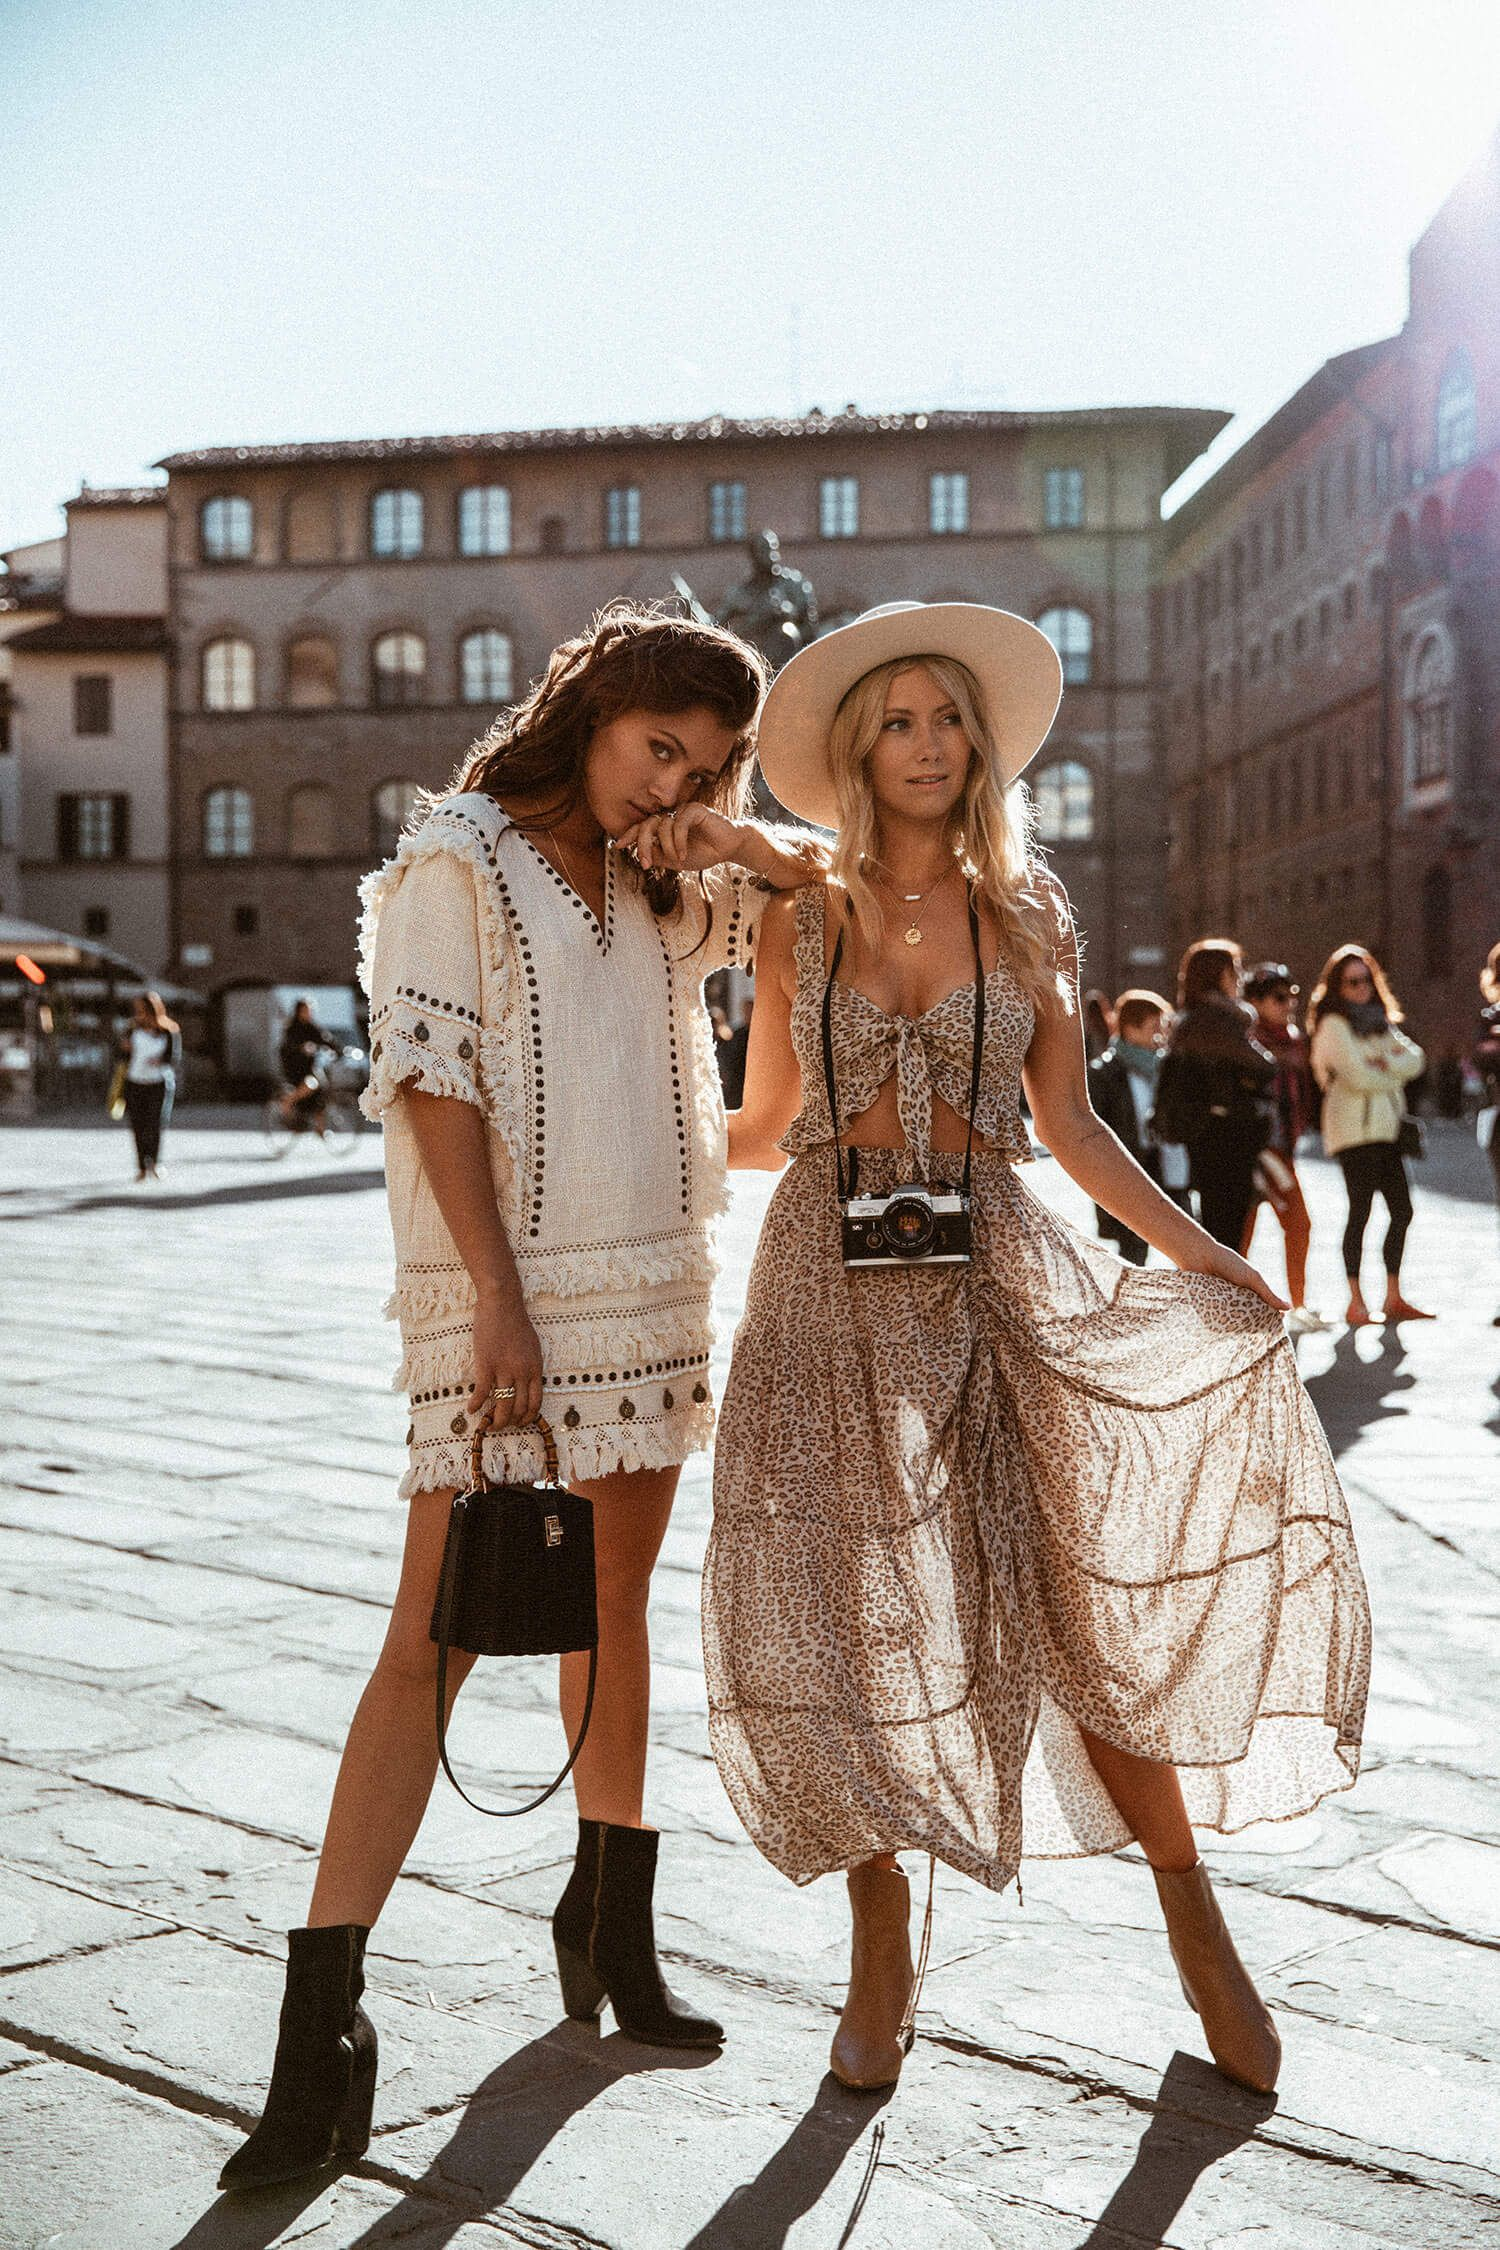 0da5eedbdf The 10 best boho brands from Australia you just have to discover now ...